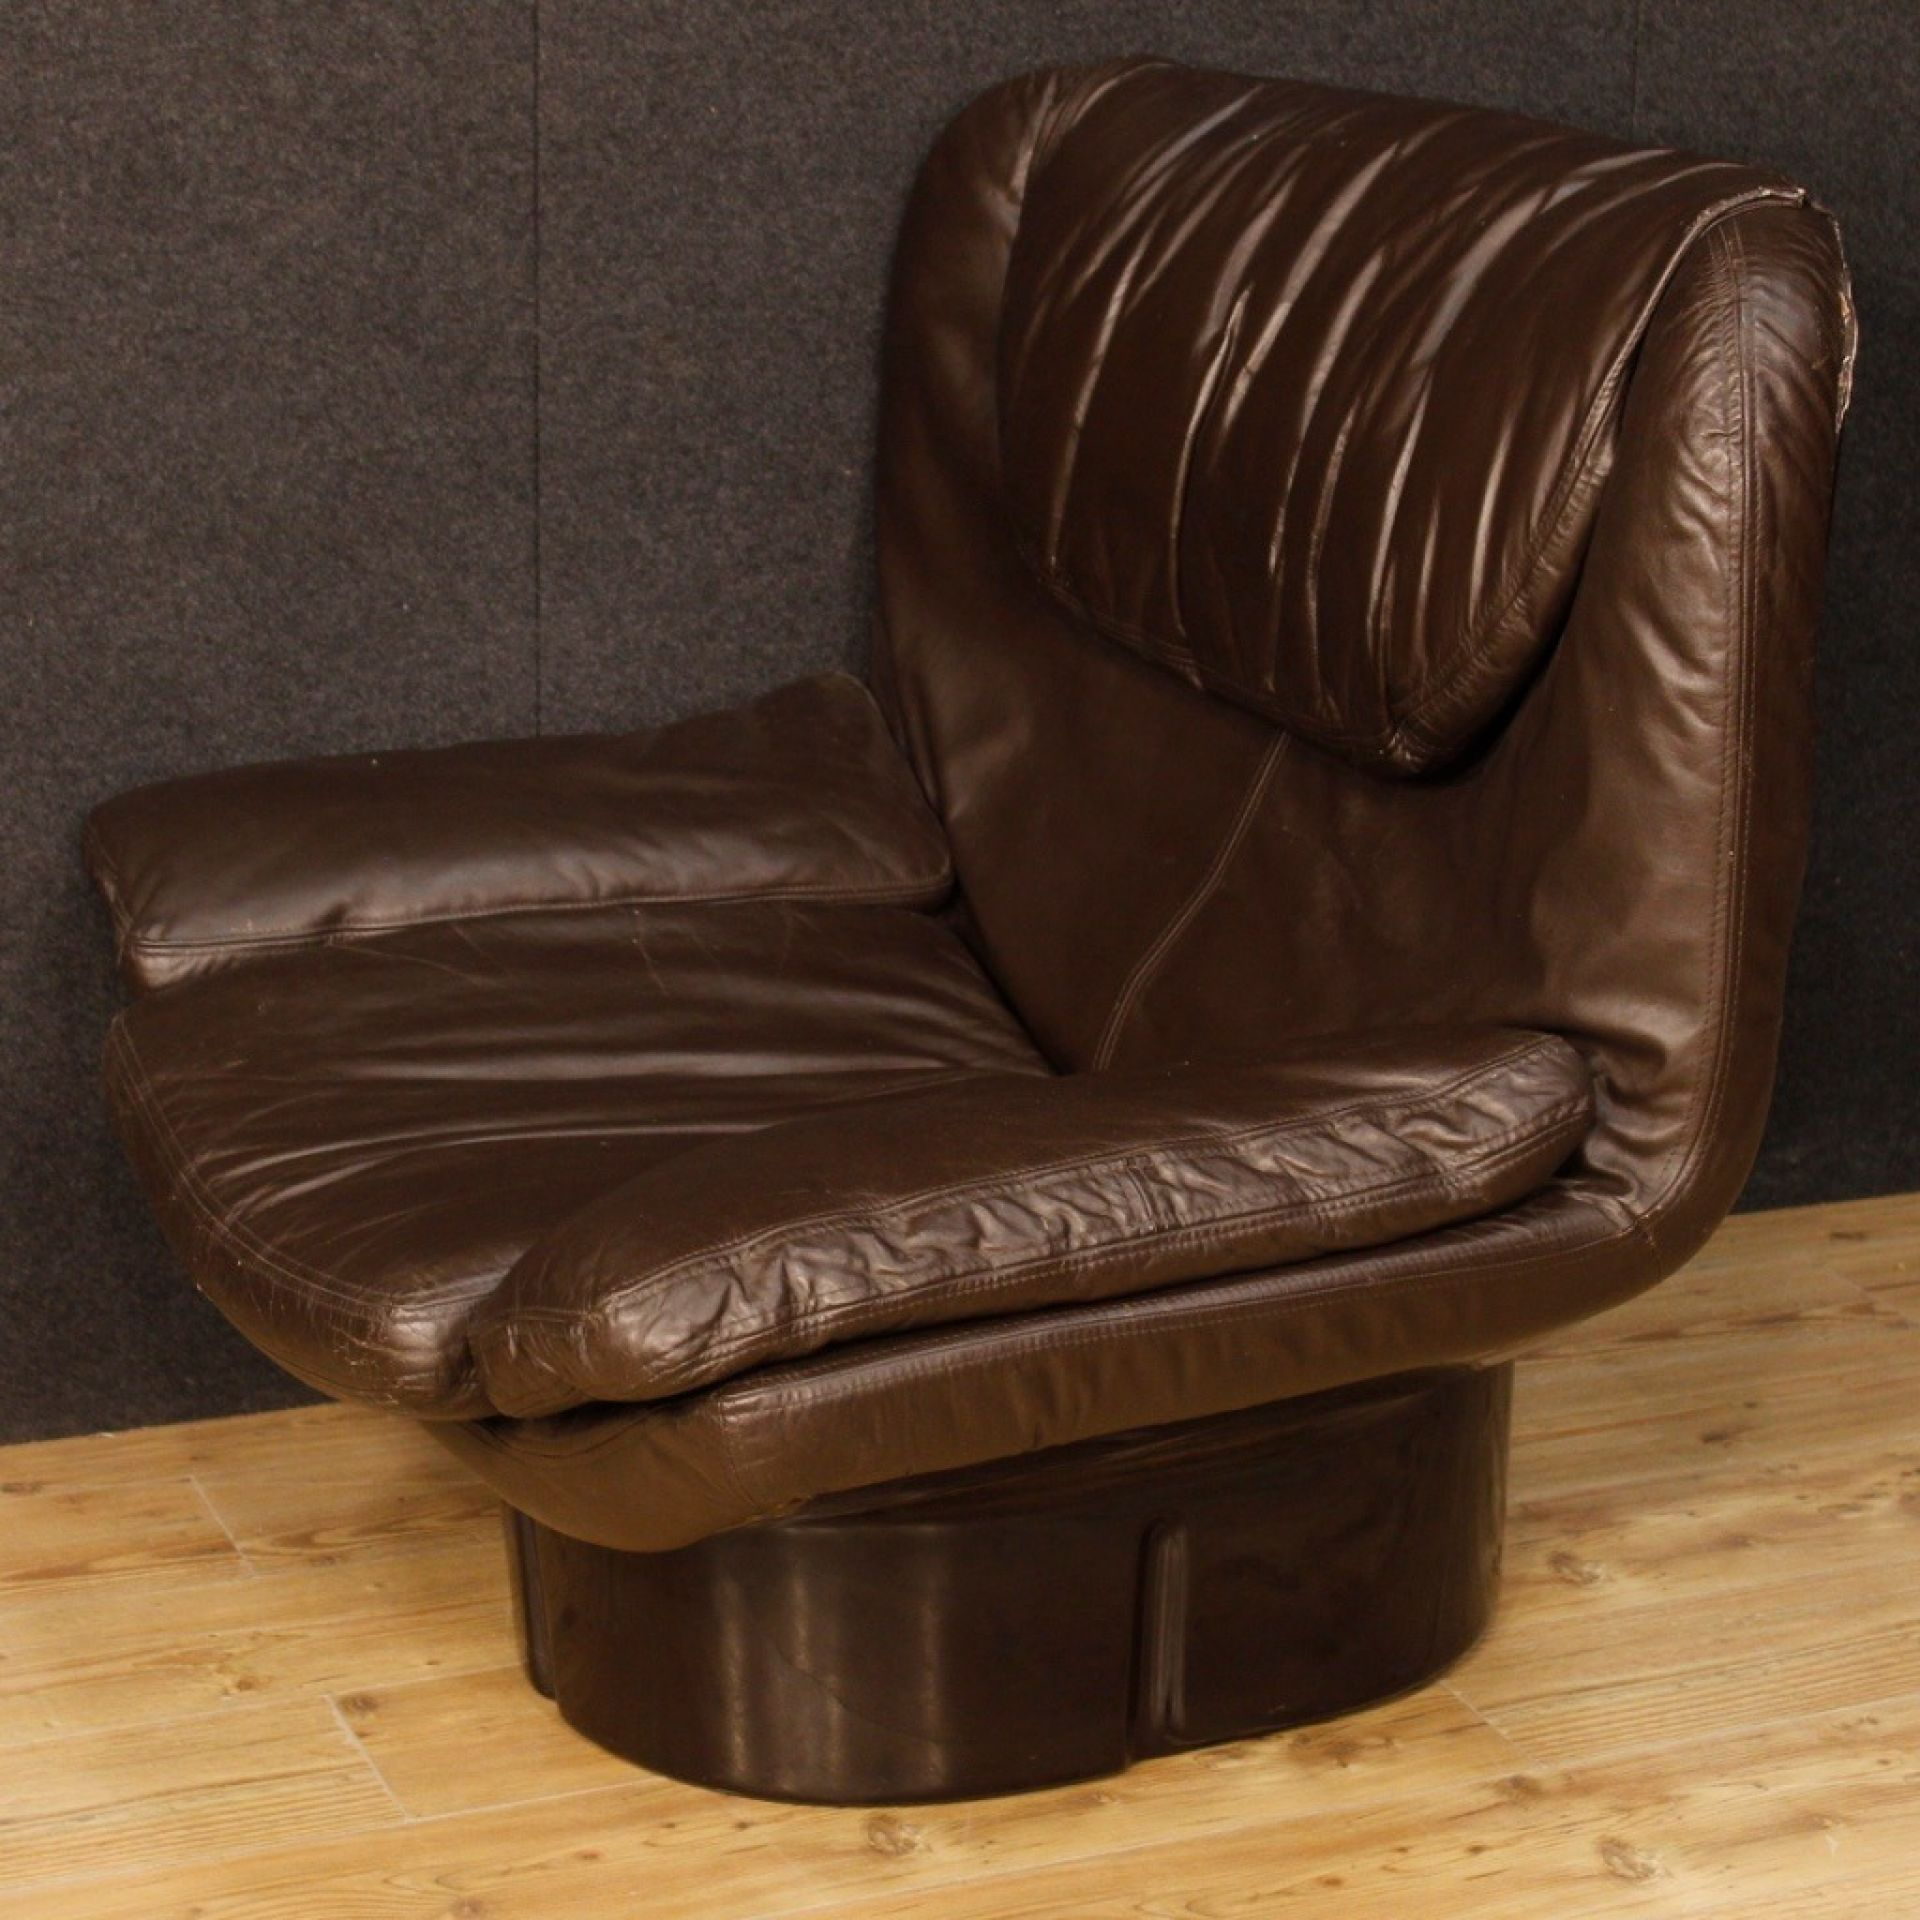 20th Century Brown Leather and Plastic Italian Joe Colombo Style Armchair, 1970